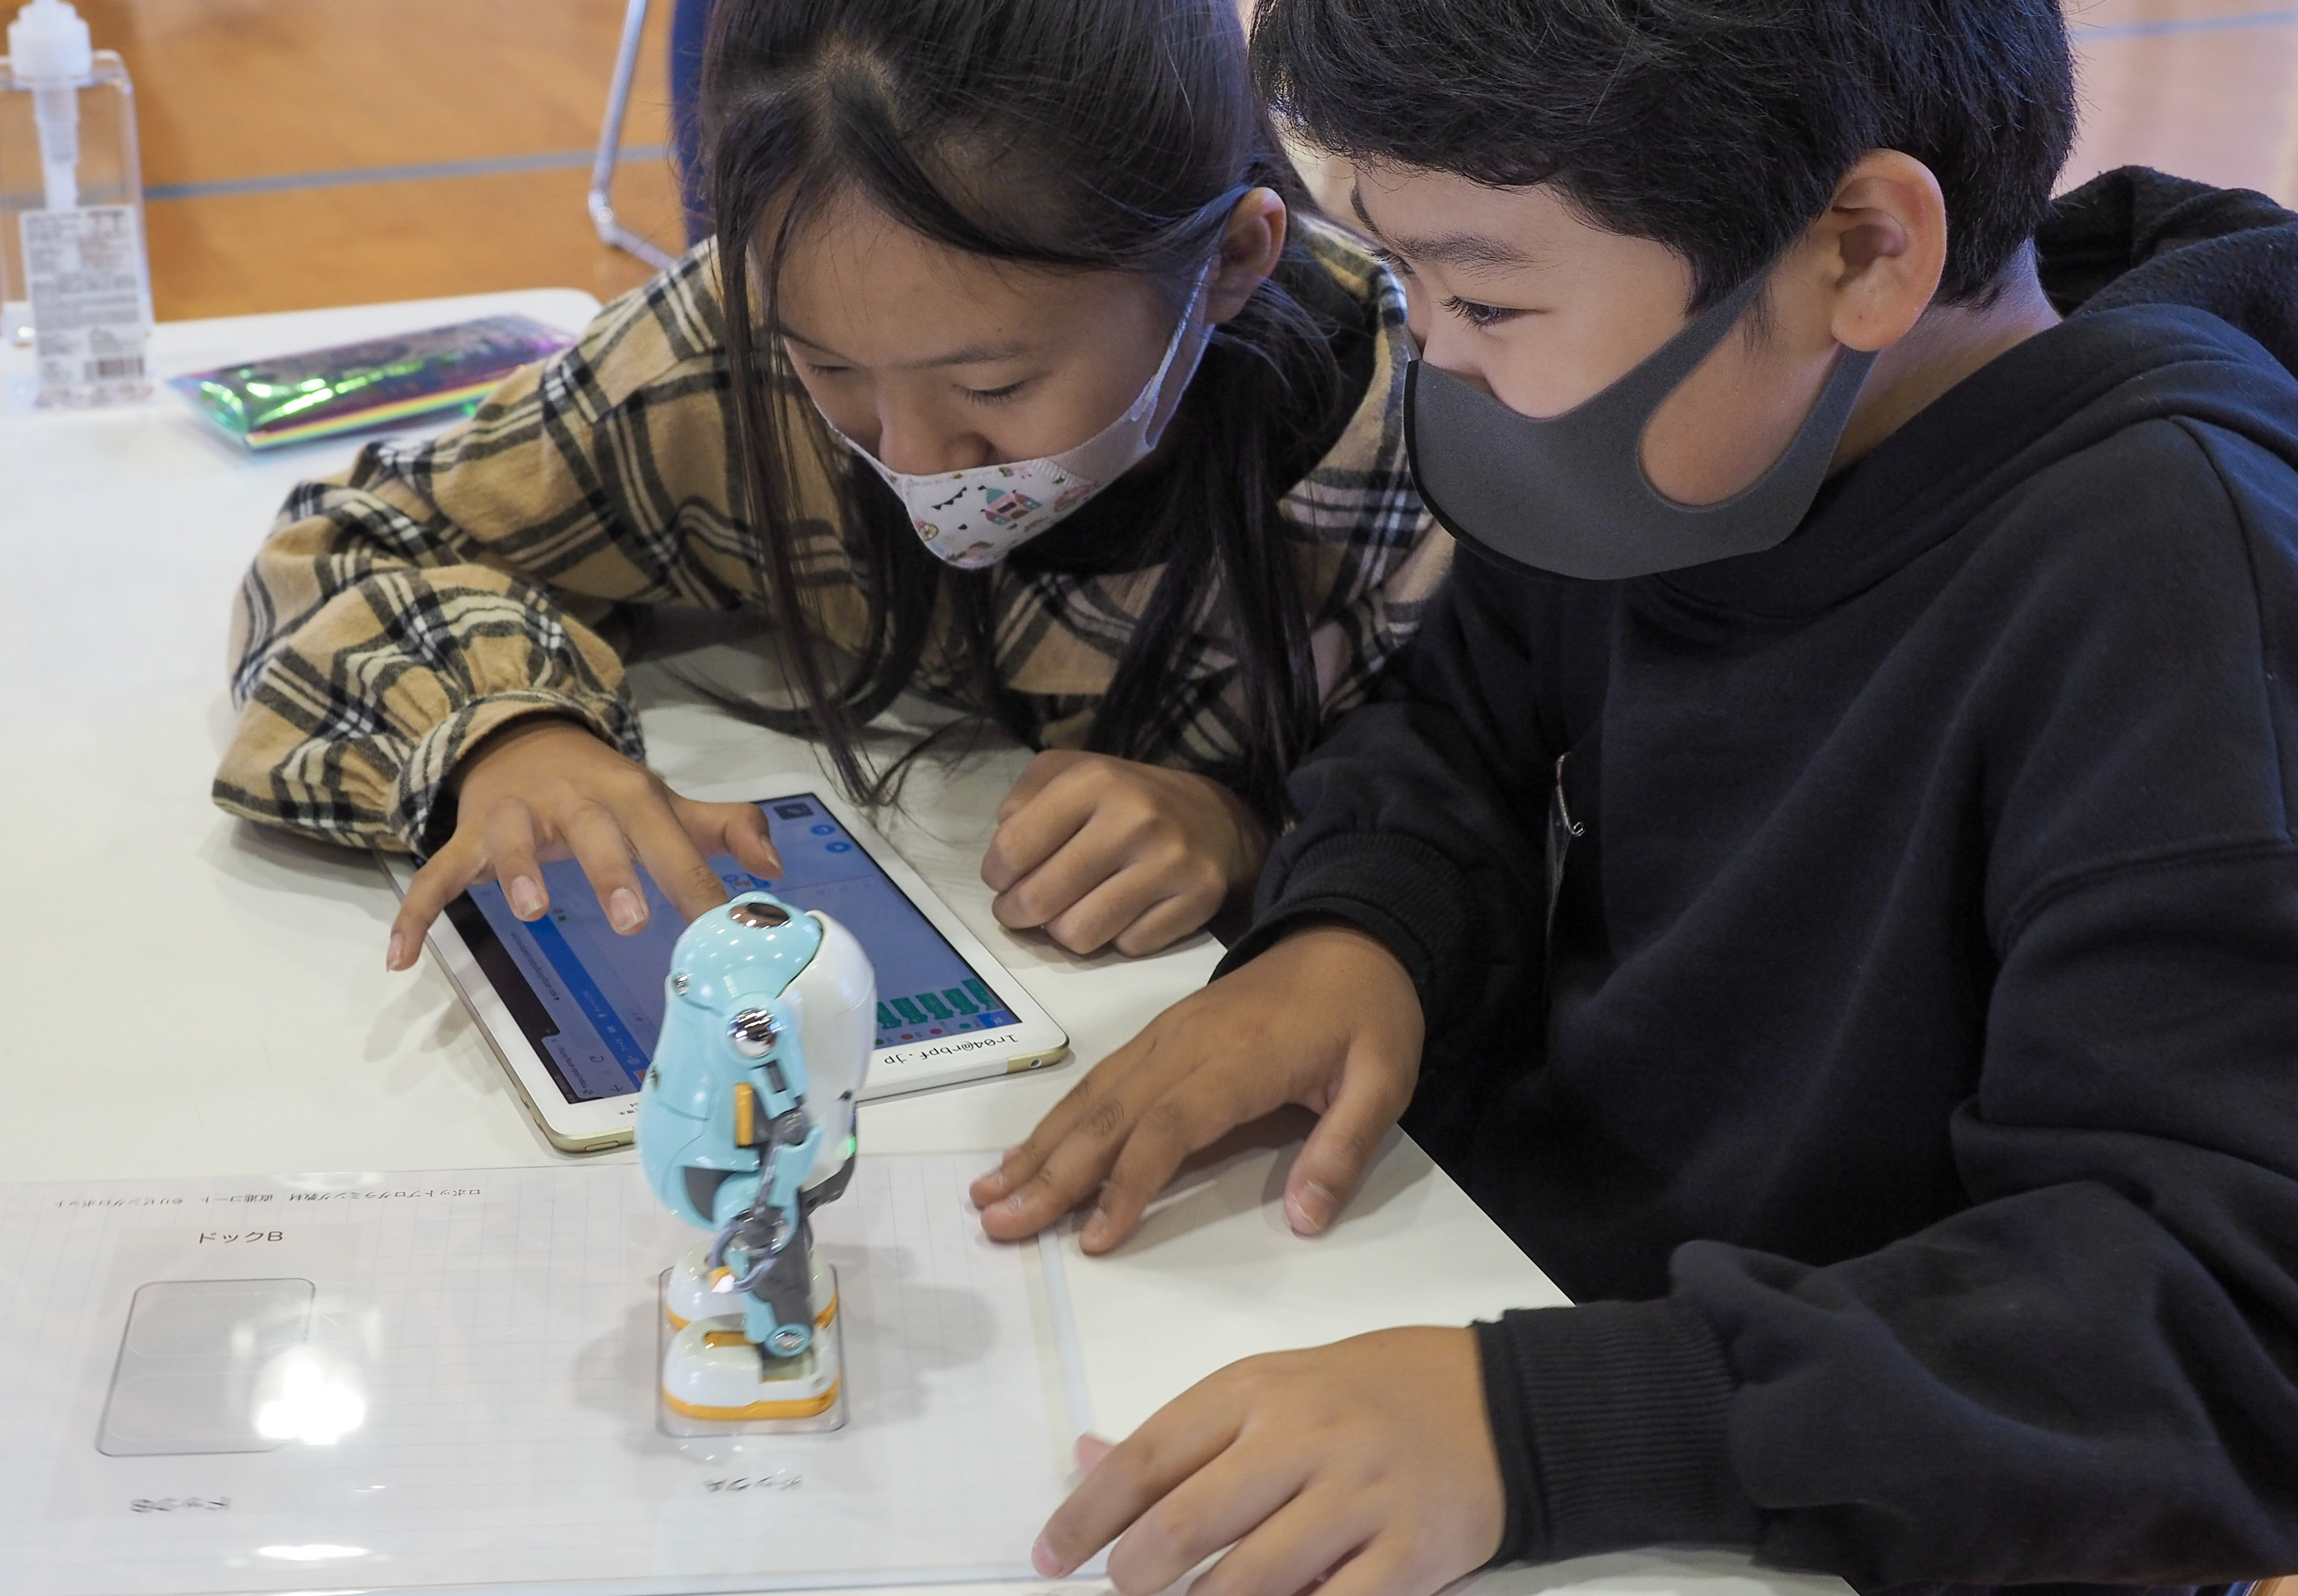 two girls looking into tablet trying to move robot